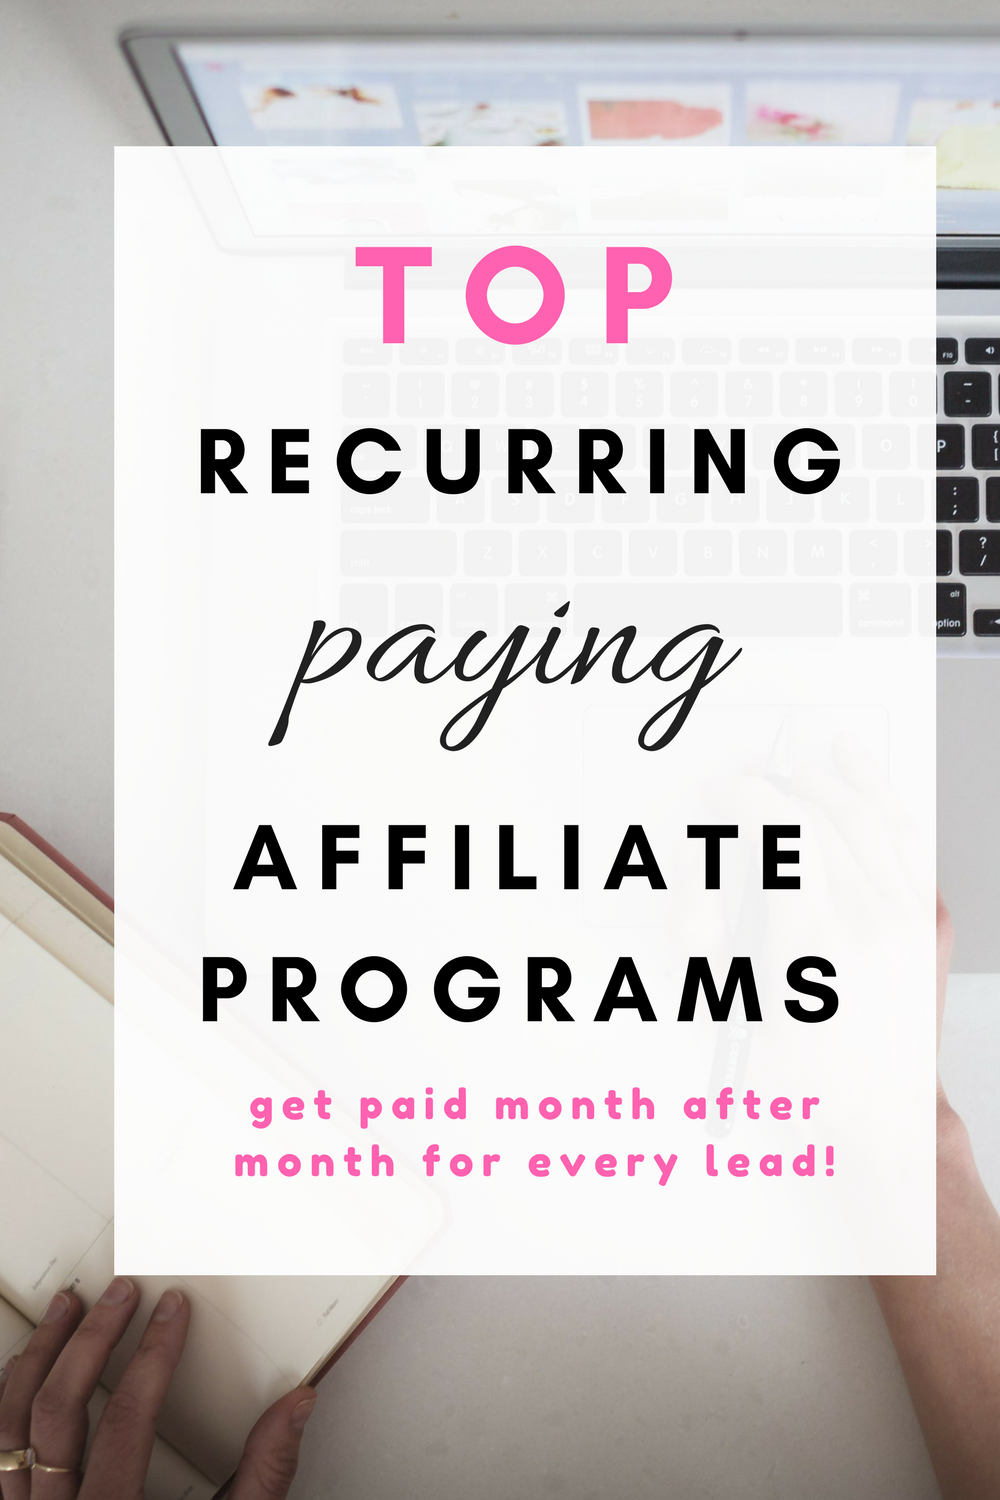 Top recurring income affiliate programs and the highest paying affiliate programs for bloggers to join and get paid month after month for every lead